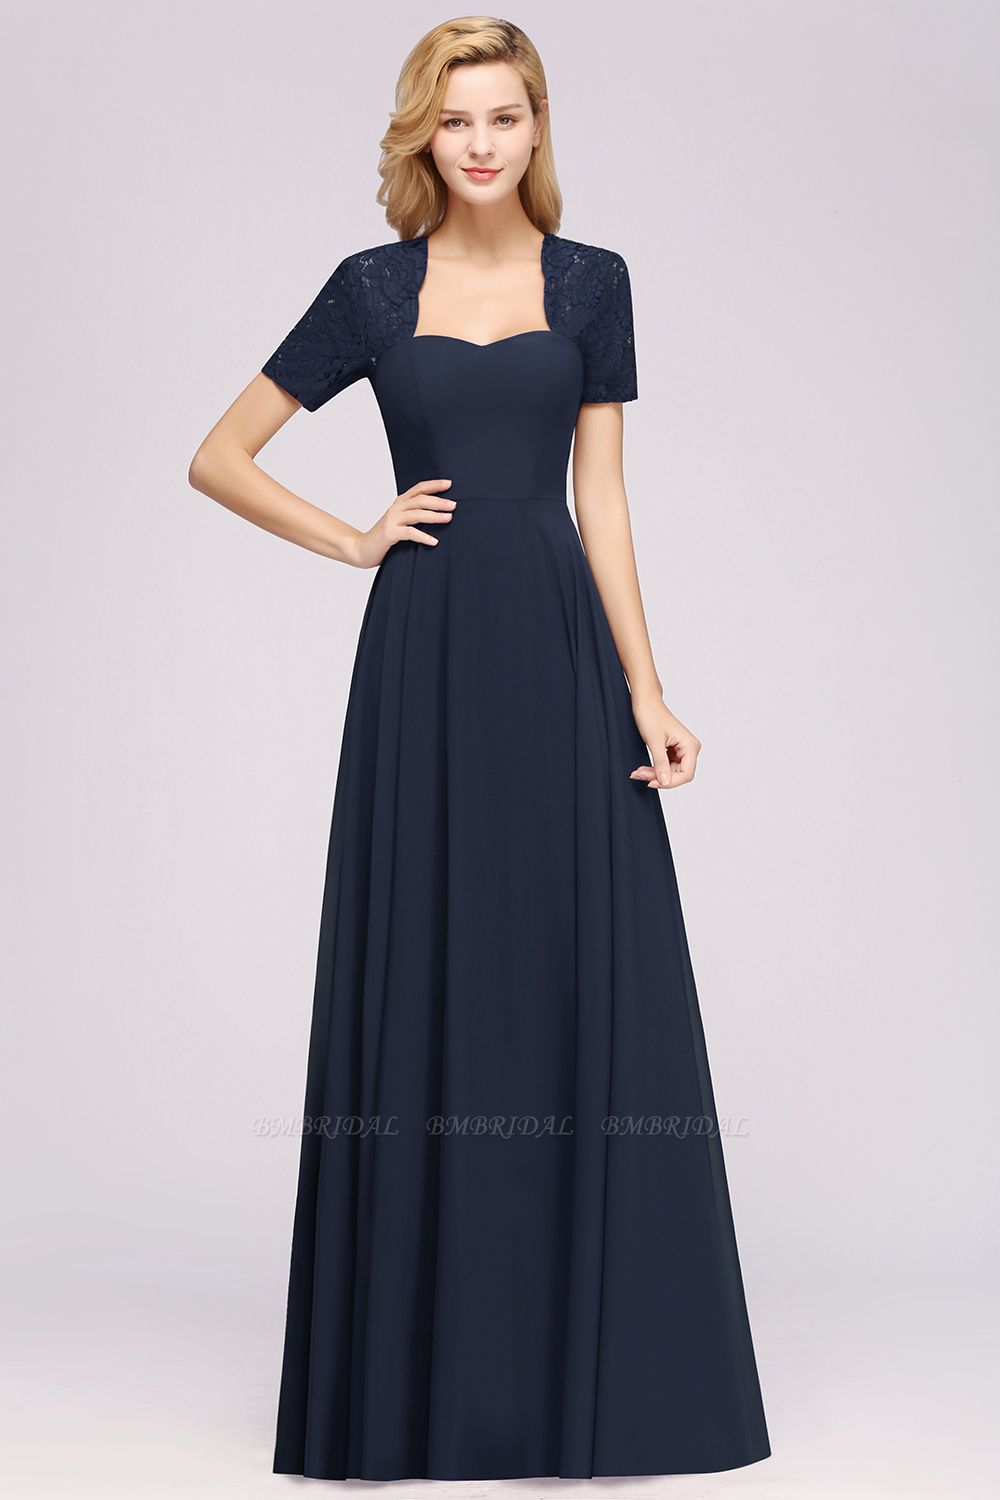 BMbridal Dark Navy Open-Back Long Bridesmaid Dress With Short Sleeves